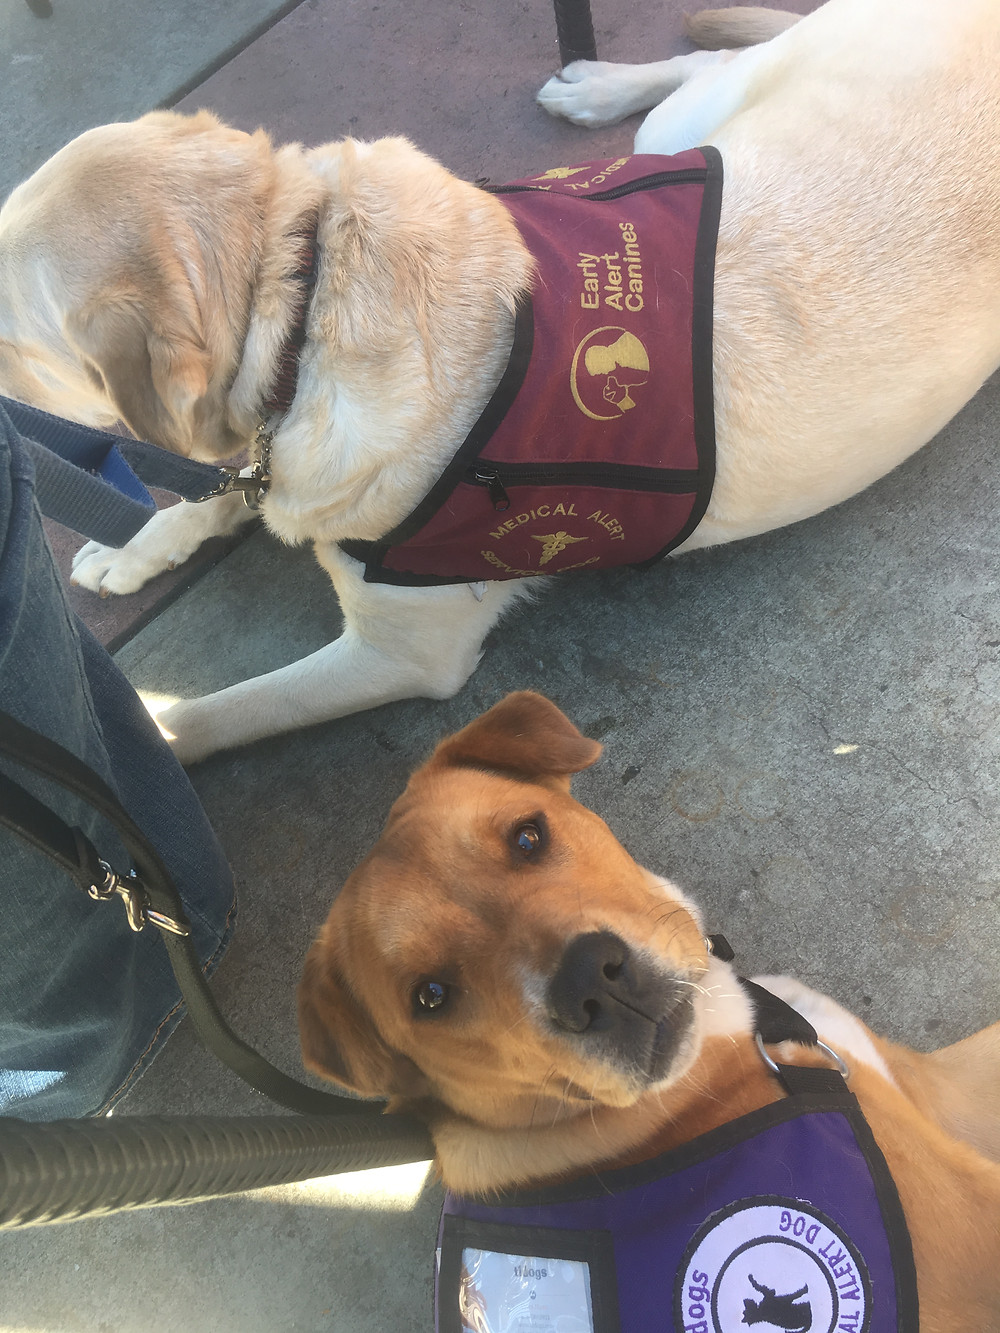 Meeting fellow service dogs for coffee to practice focus in public with other dogs present